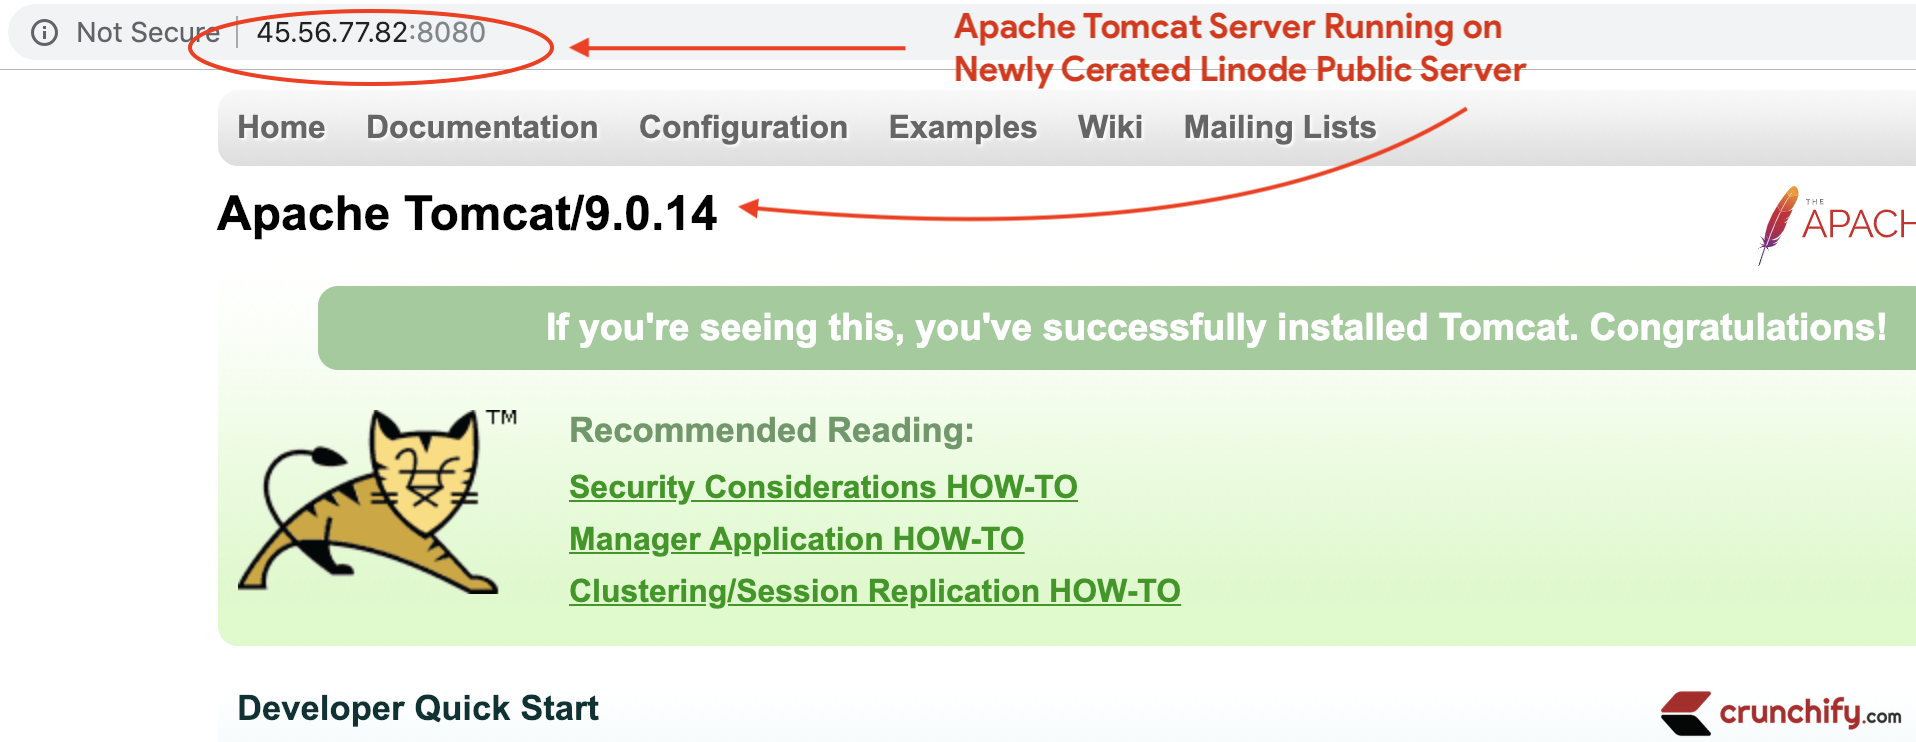 How To Install Setup Apache Tomcat Server On Linux Ubuntu Host On Linode Crunchify